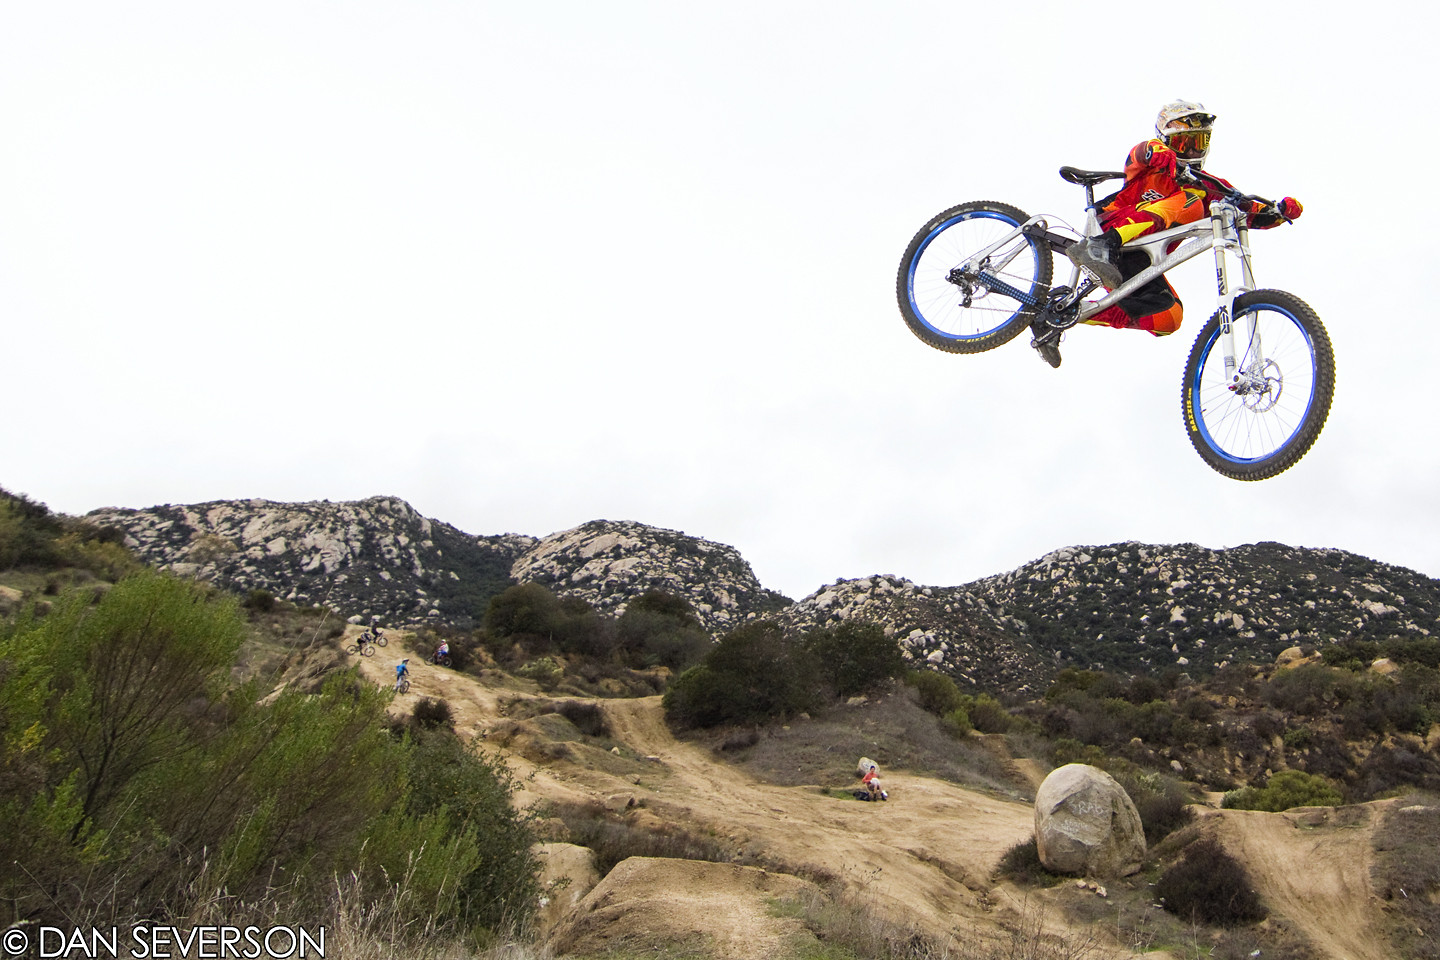 ANDRE PEPIN  - danseverson photo - Mountain Biking Pictures - Vital MTB